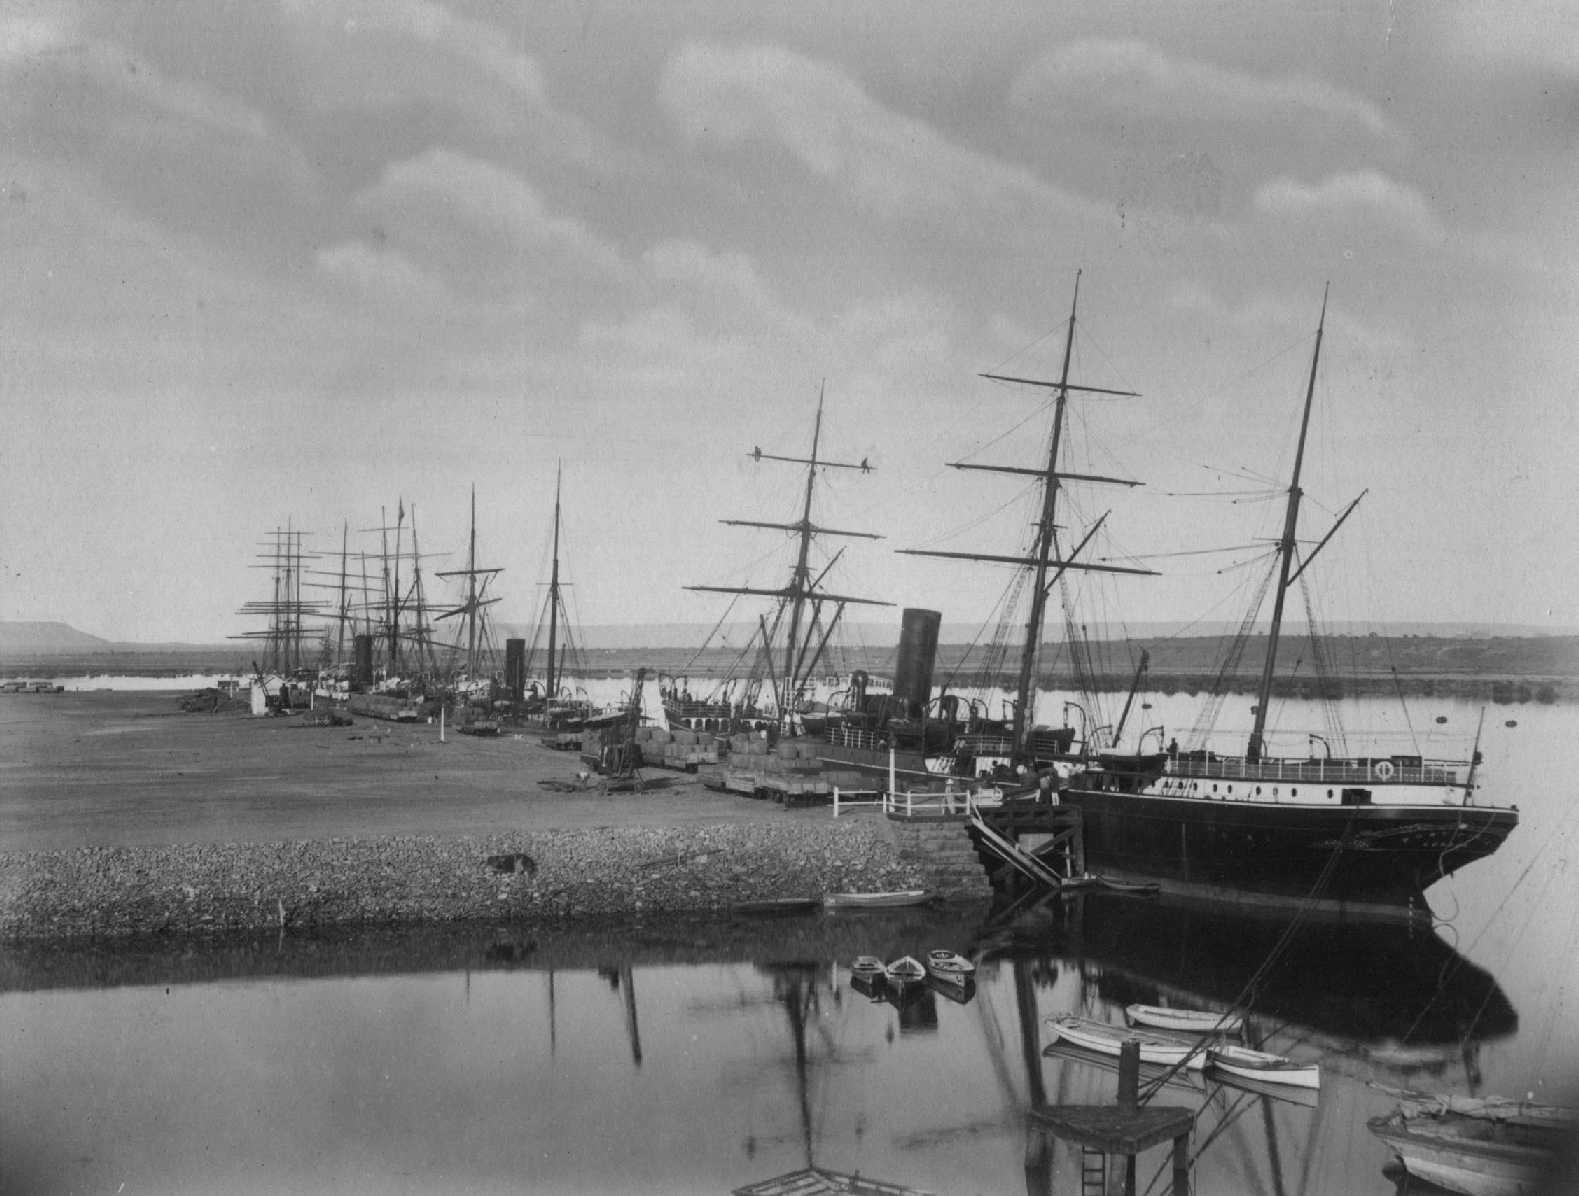 """Barque """"Rohilla"""" built in 1865 by A Stephen & Sons - Glasgow.  Owned by L.F. Mathies & Co.  Master - P Breckwoldt. Tonnage:  985 comp. Dimensions:  length 201'0"""", breadth 33'2"""", draught 20'5"""" Port Of Registry:  Hamburg  Iron Barque """"Oriana"""", built in"""